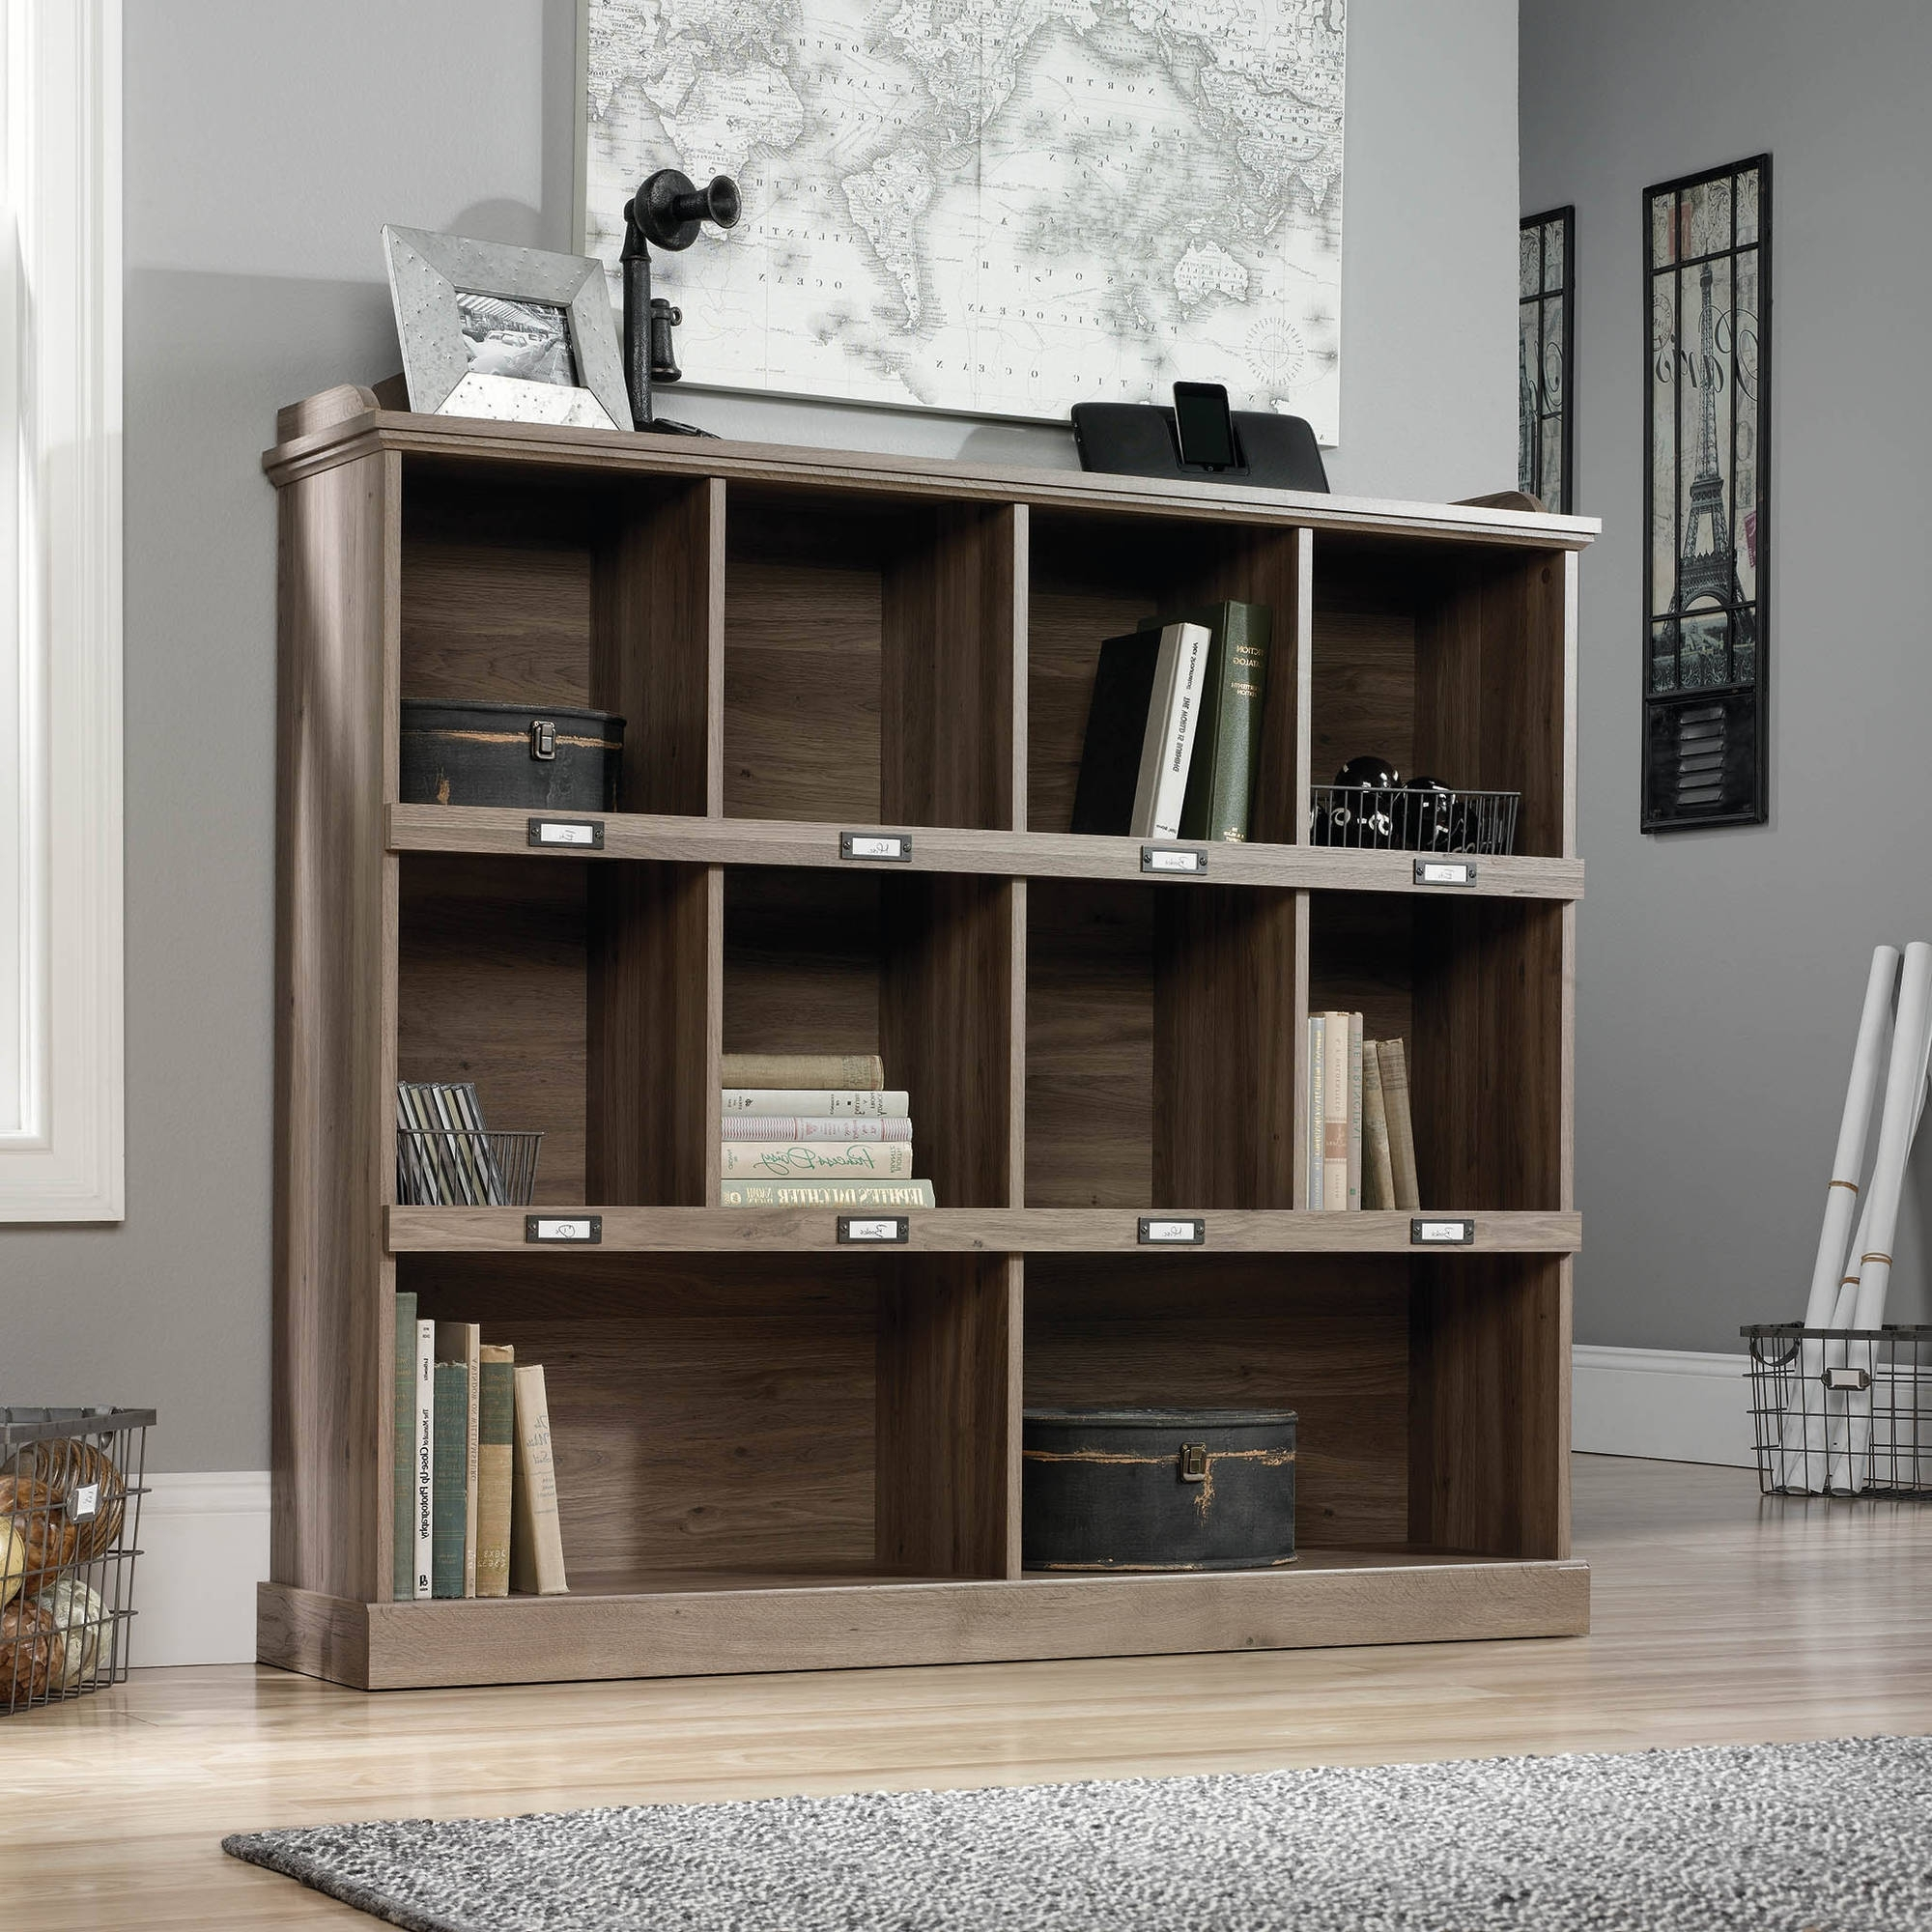 Trendy Bookcases – Walmart For Walmart Bookcases (View 2 of 15)